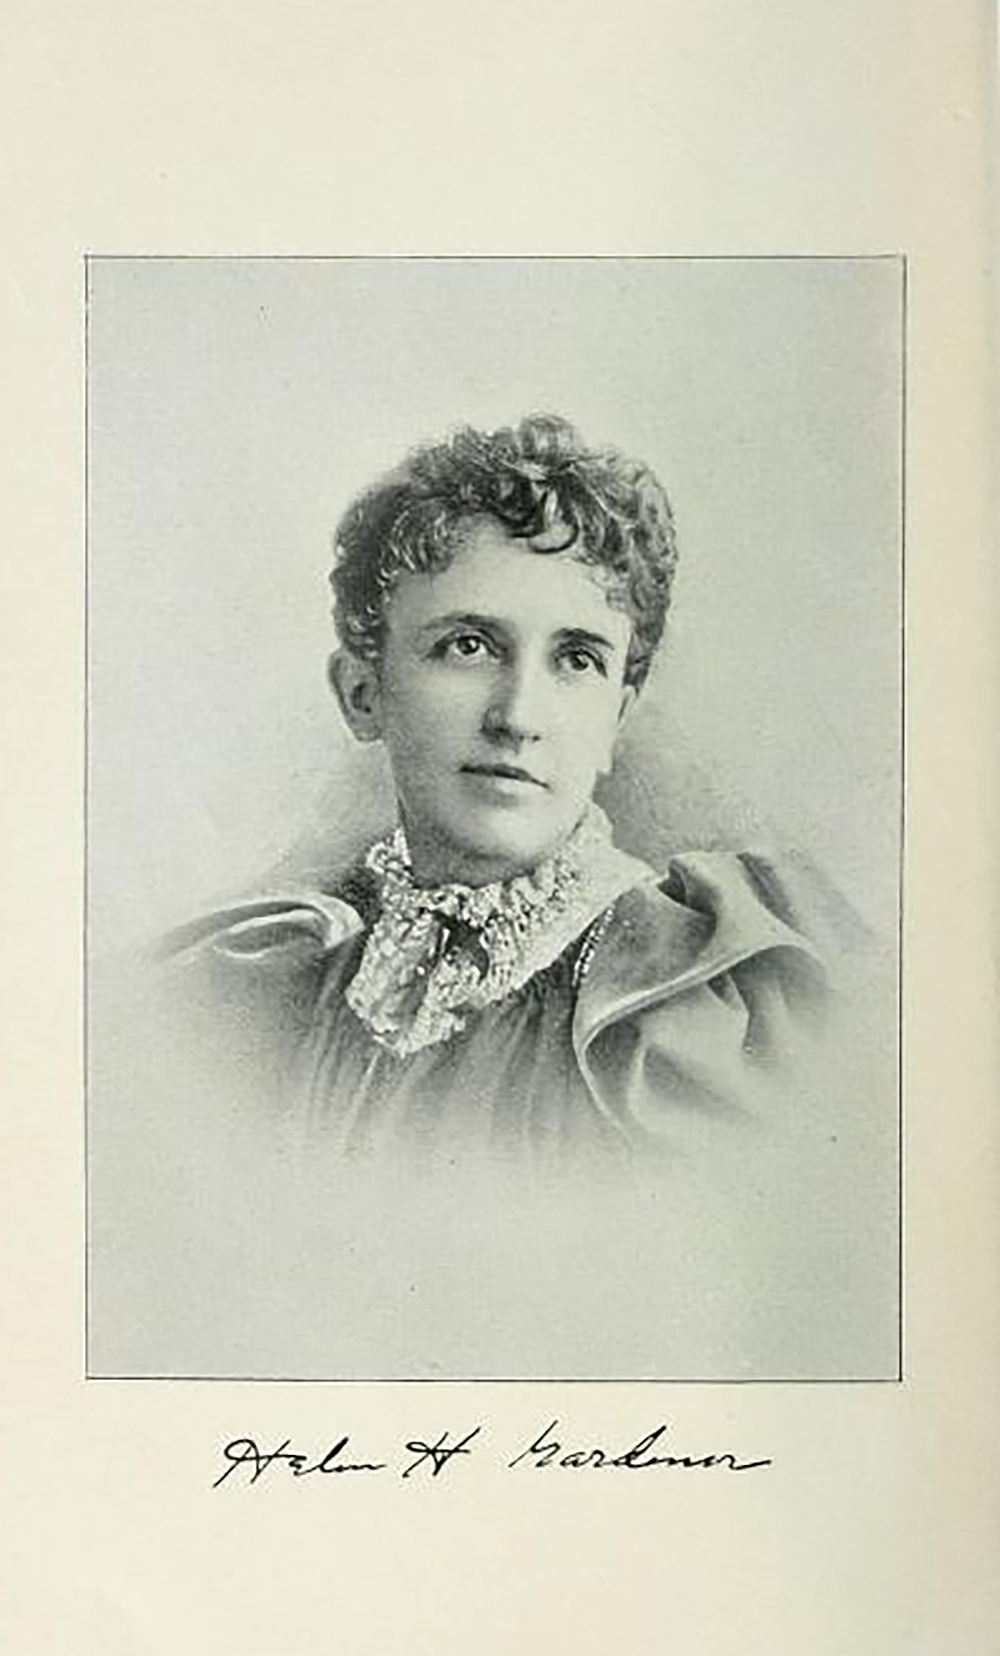 Frontispiece of Pray You, Sir, Whose Daughter, by Helen Hamilton Gardener, c. 1892. Internet Archive, University of California Libraries.